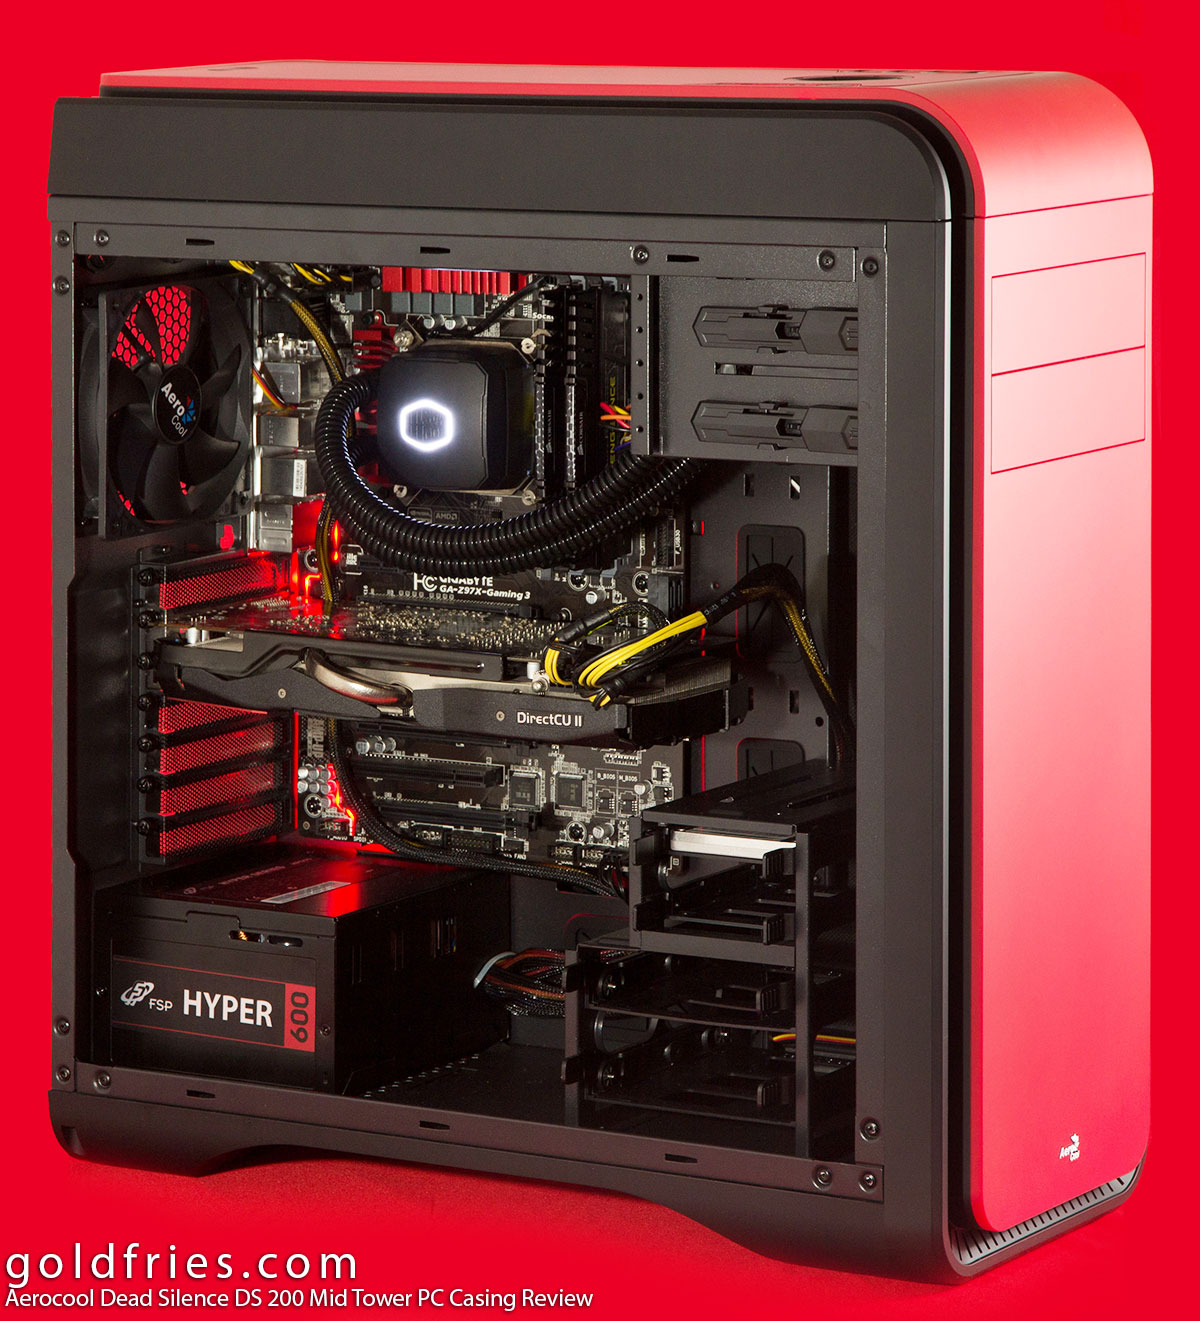 Aerocool Dead Silence DS 200 Mid Tower PC Casing Review